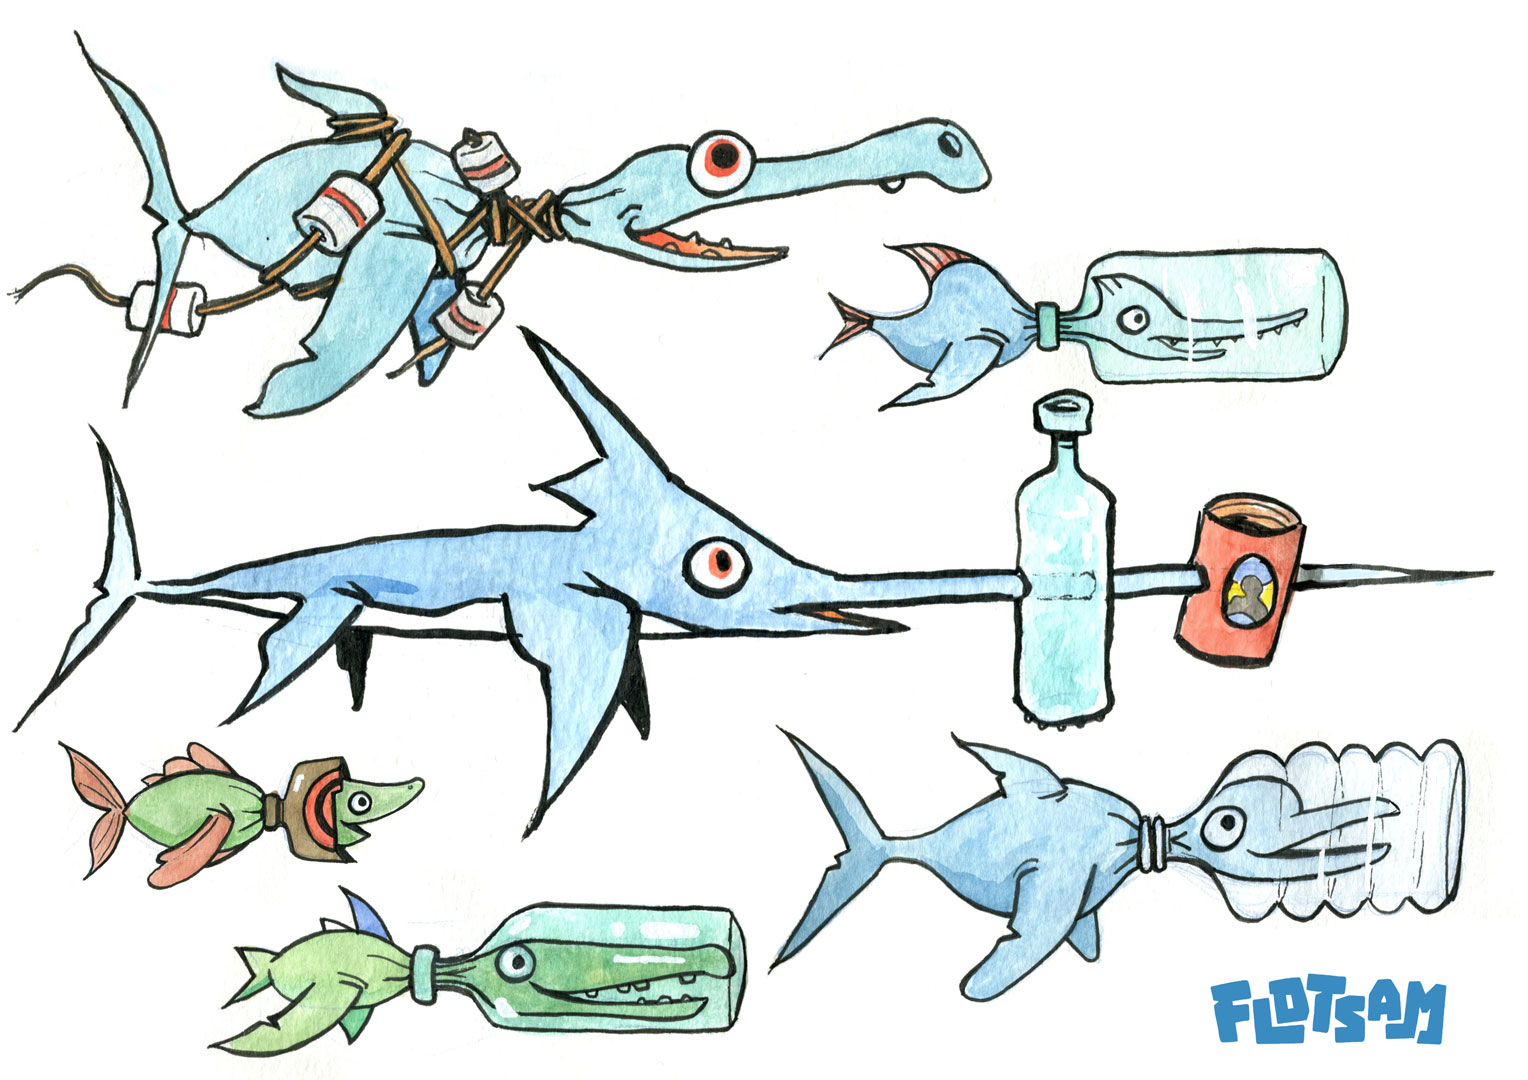 Flotsam game friendly fish concept